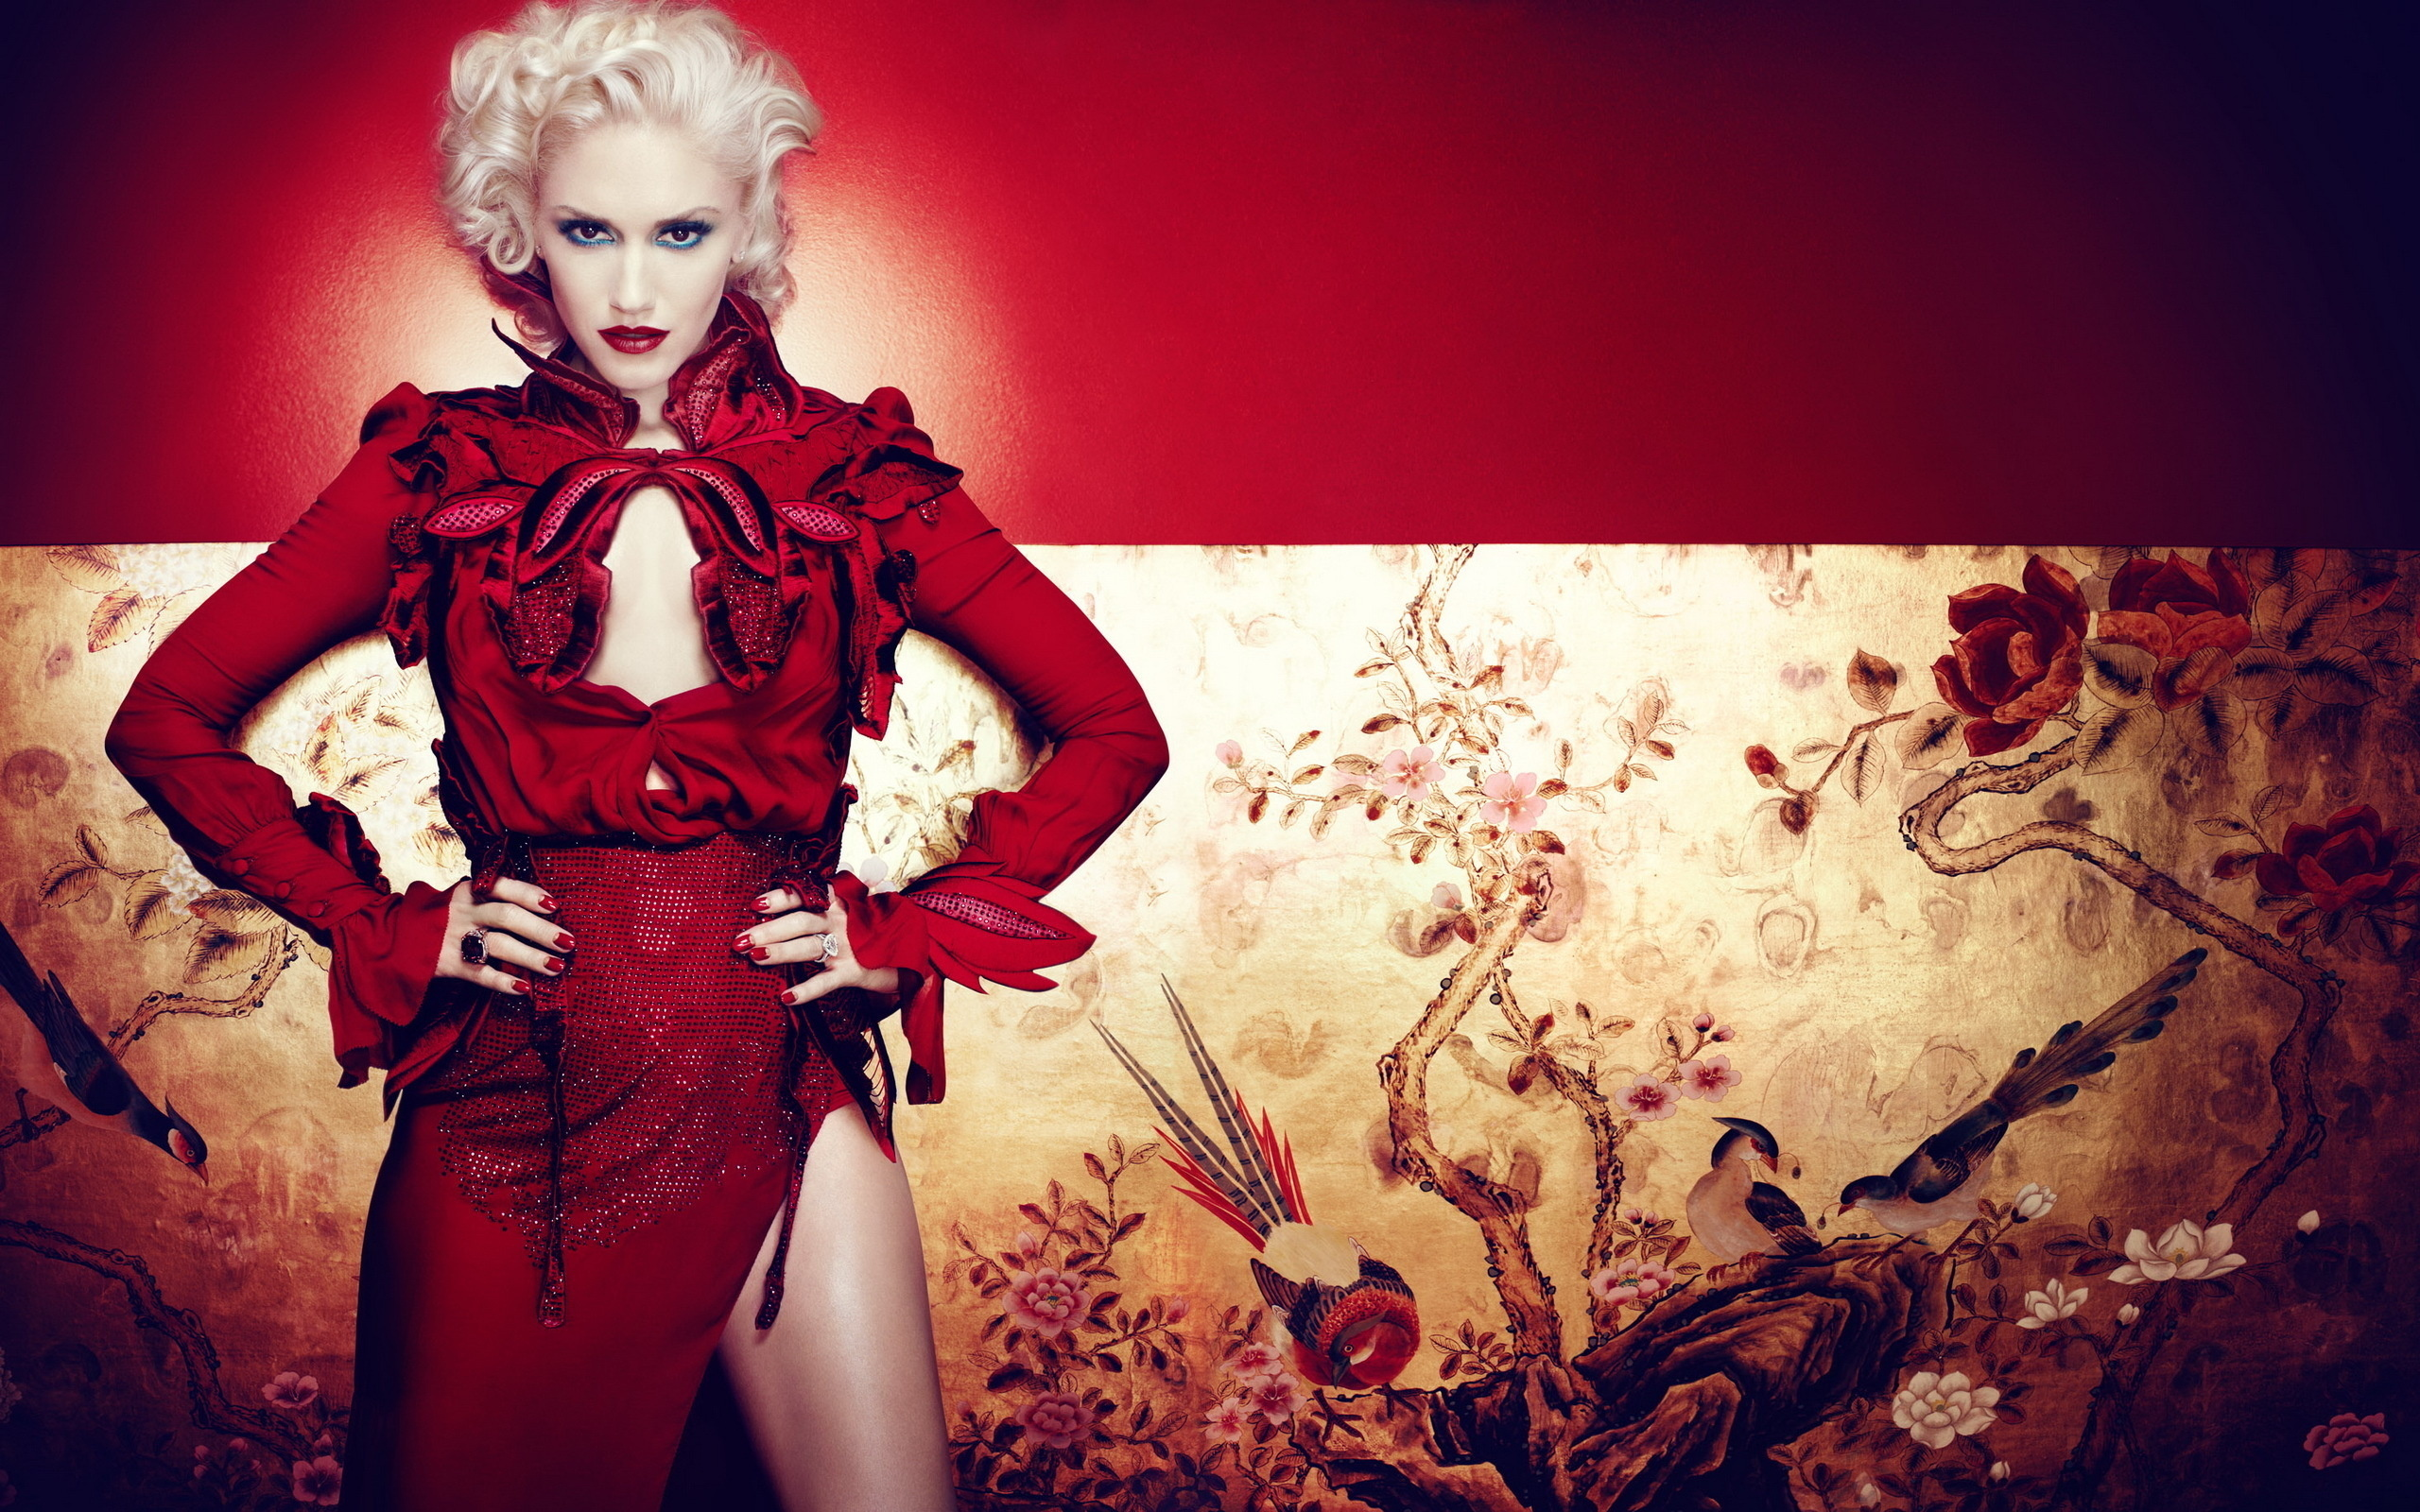 gwen stefani wallpaper cool - photo #33